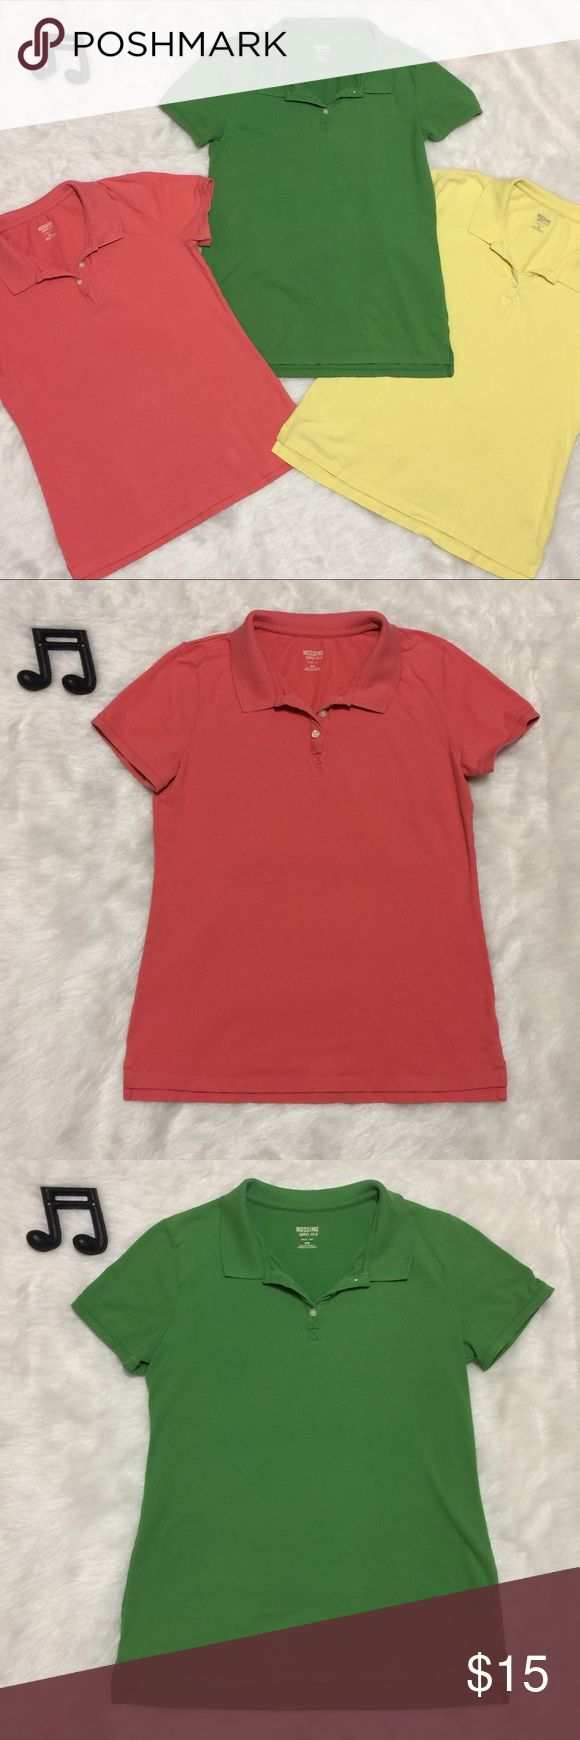 Bundle of 3 Fitted Pique Polo Shirts Price includes all 3 Fitted style Pique Polo Shorts. All size medium from Mossimo. Salmon Pink, Lemon Yellow and Kelly Green. No flaws. I also have these listed separately if you only want one but I am discounting for the bundle.  See measurements in photos for sizing questions.   🔽🔽🔽🔽🔽🔽🔽🔽🔽🔽🔽🔽🔽🔽🔽🔽🔽🔽🔽🔽  • Pre-Made Bundle Listings are Firm.  • Sorry, no modeling & no trades  🔼🔼🔼🔼🔼🔼🔼🔼🔼🔼🔼🔼🔼🔼🔼🔼🔼🔼🔼🔼 Mossimo Supply Co Tops…